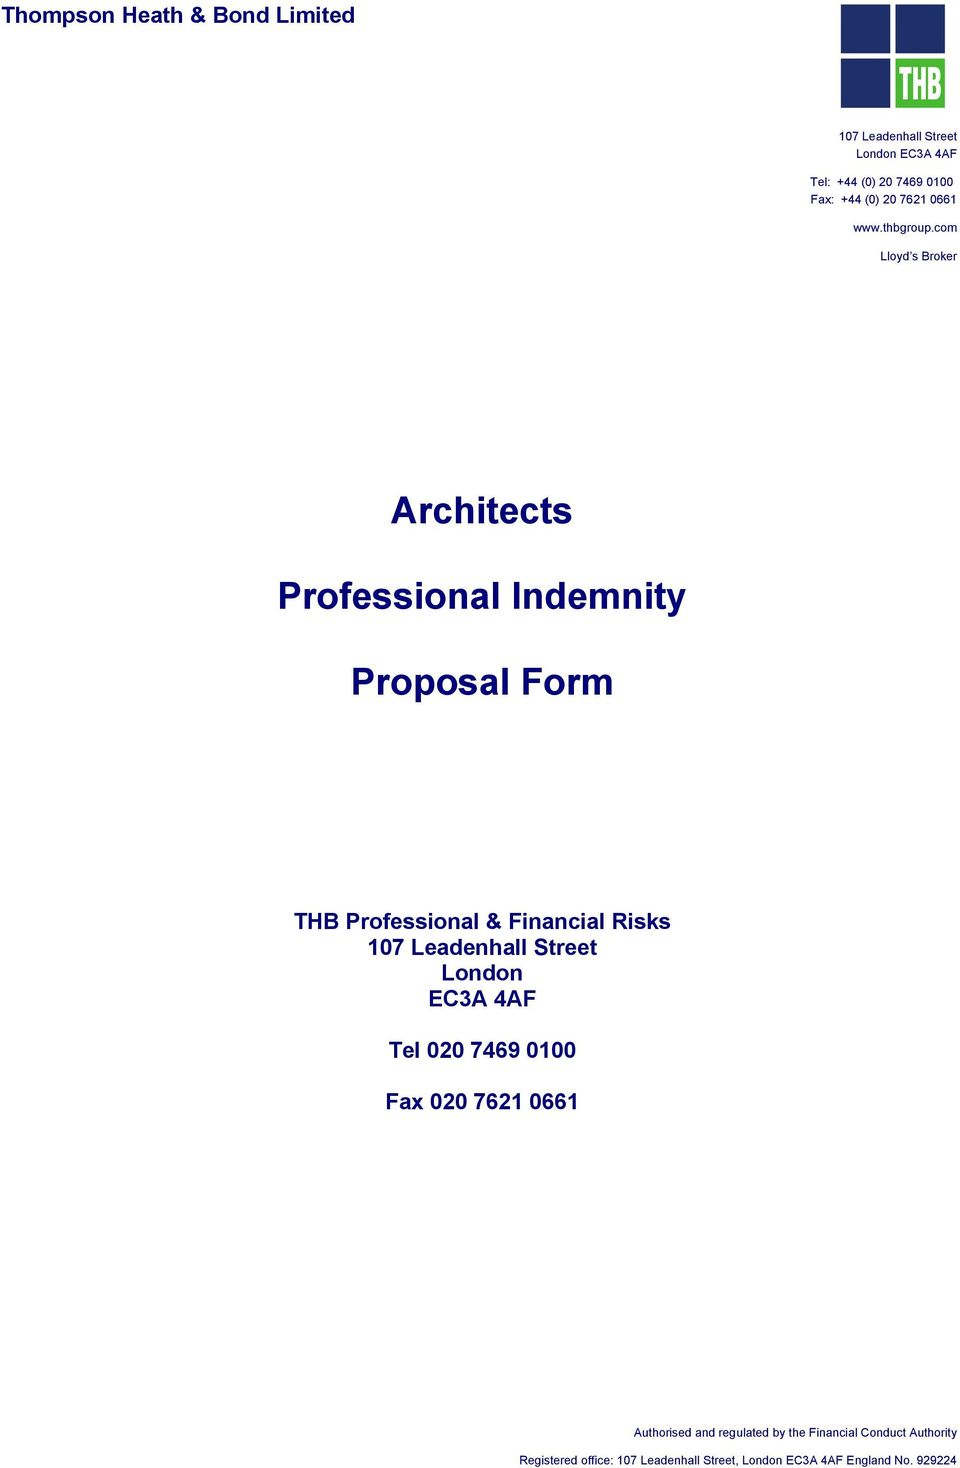 com Lloyd s Broker Architects Professional Indemnity Proposal Form THB Professional & Financial Risks 107